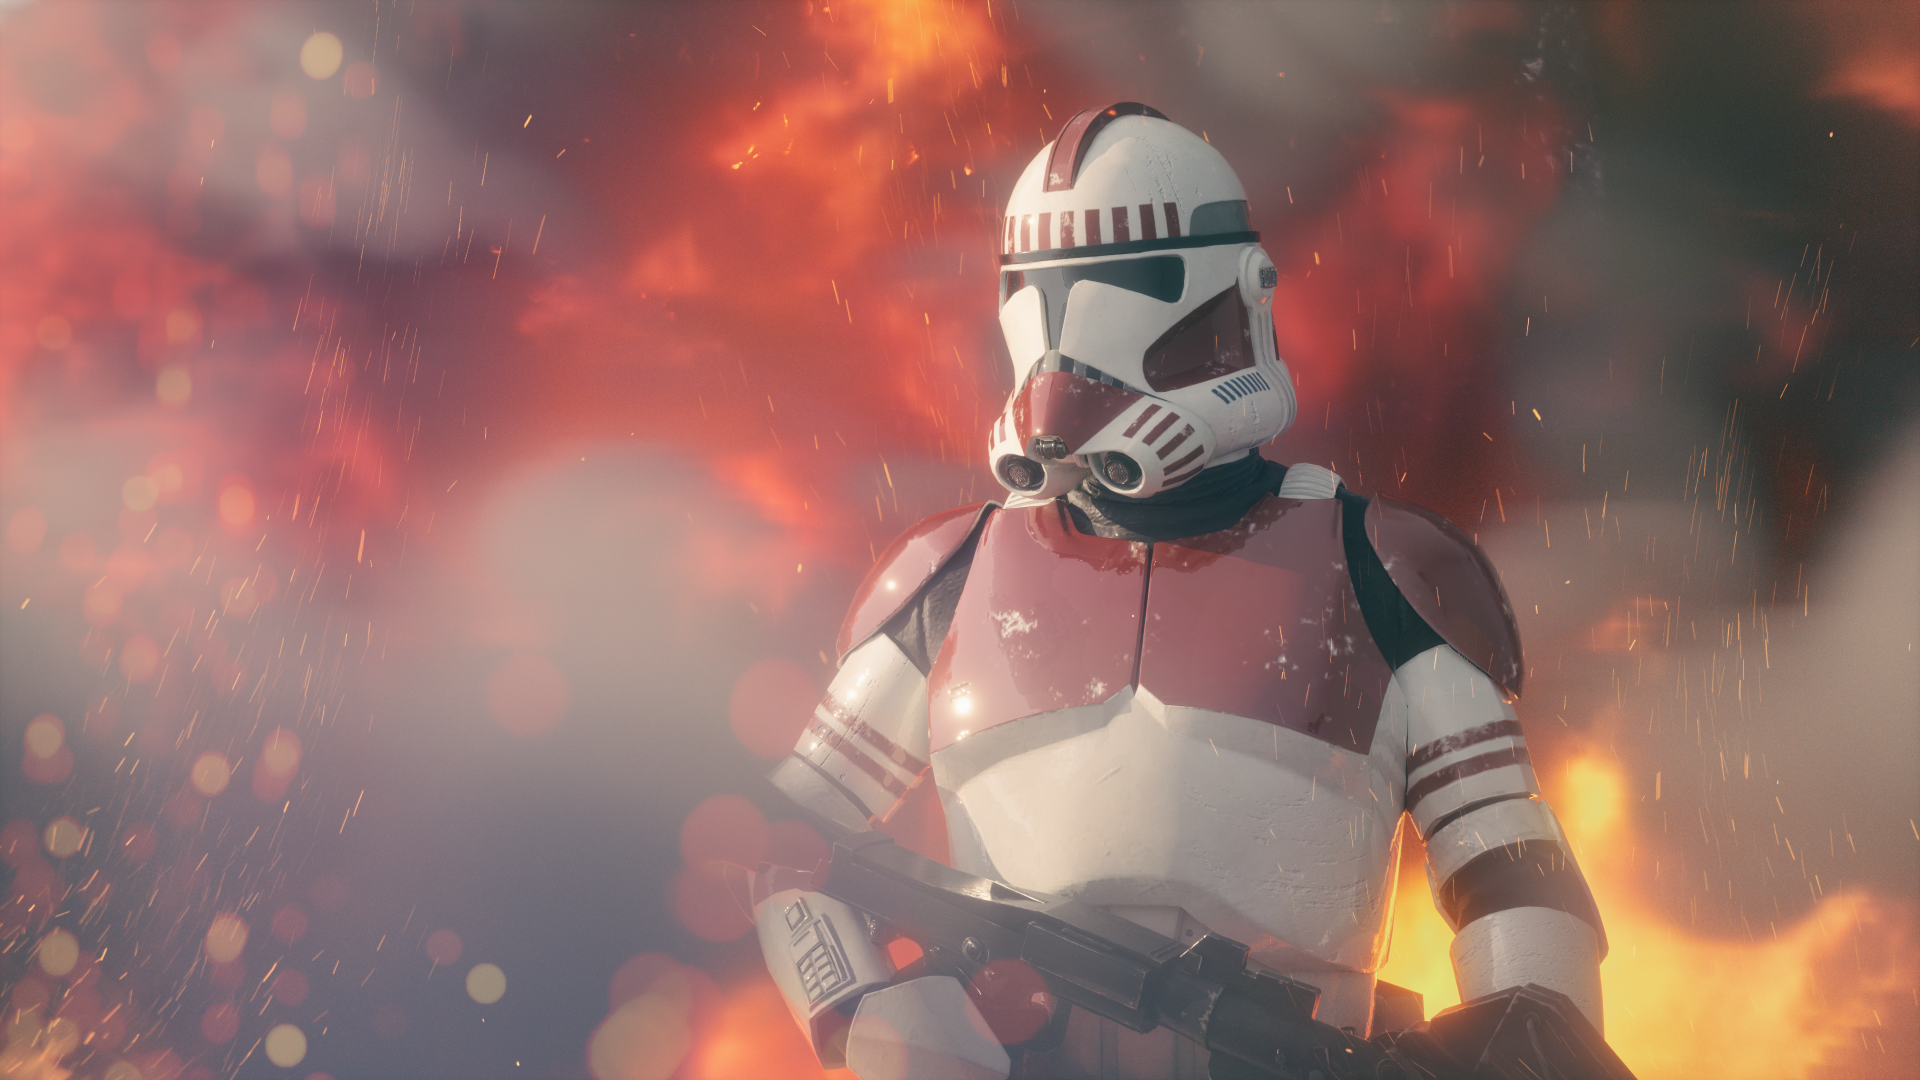 Shocktrooper Coruscant Guard 4k Ultra Hd Wallpaper Background Image 3840x2160 Id 902426 Wallpaper Abyss